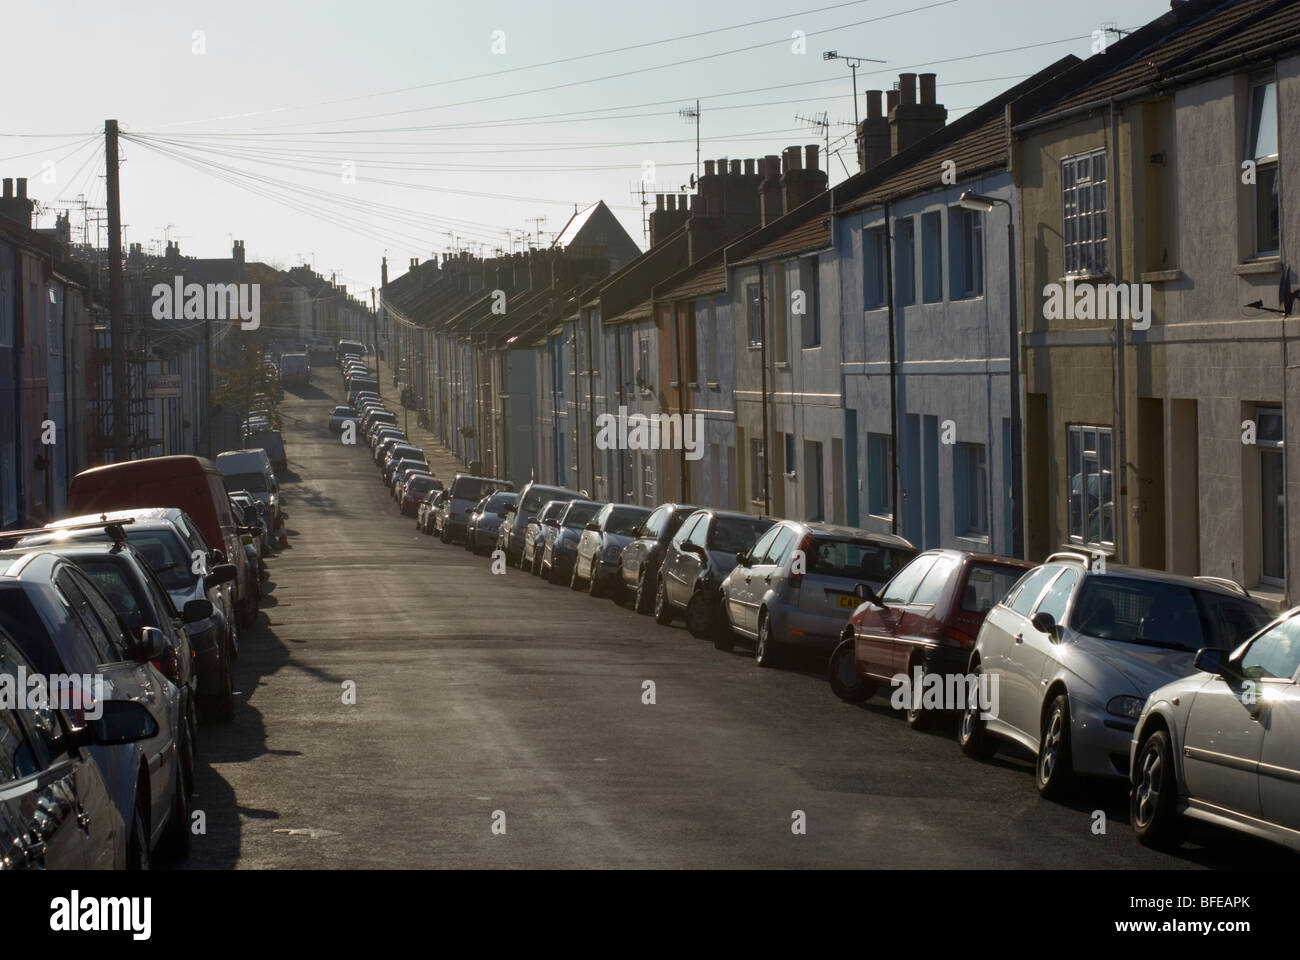 Lines of parked cars on a residential street. Hanover, Brighton. - Stock Image